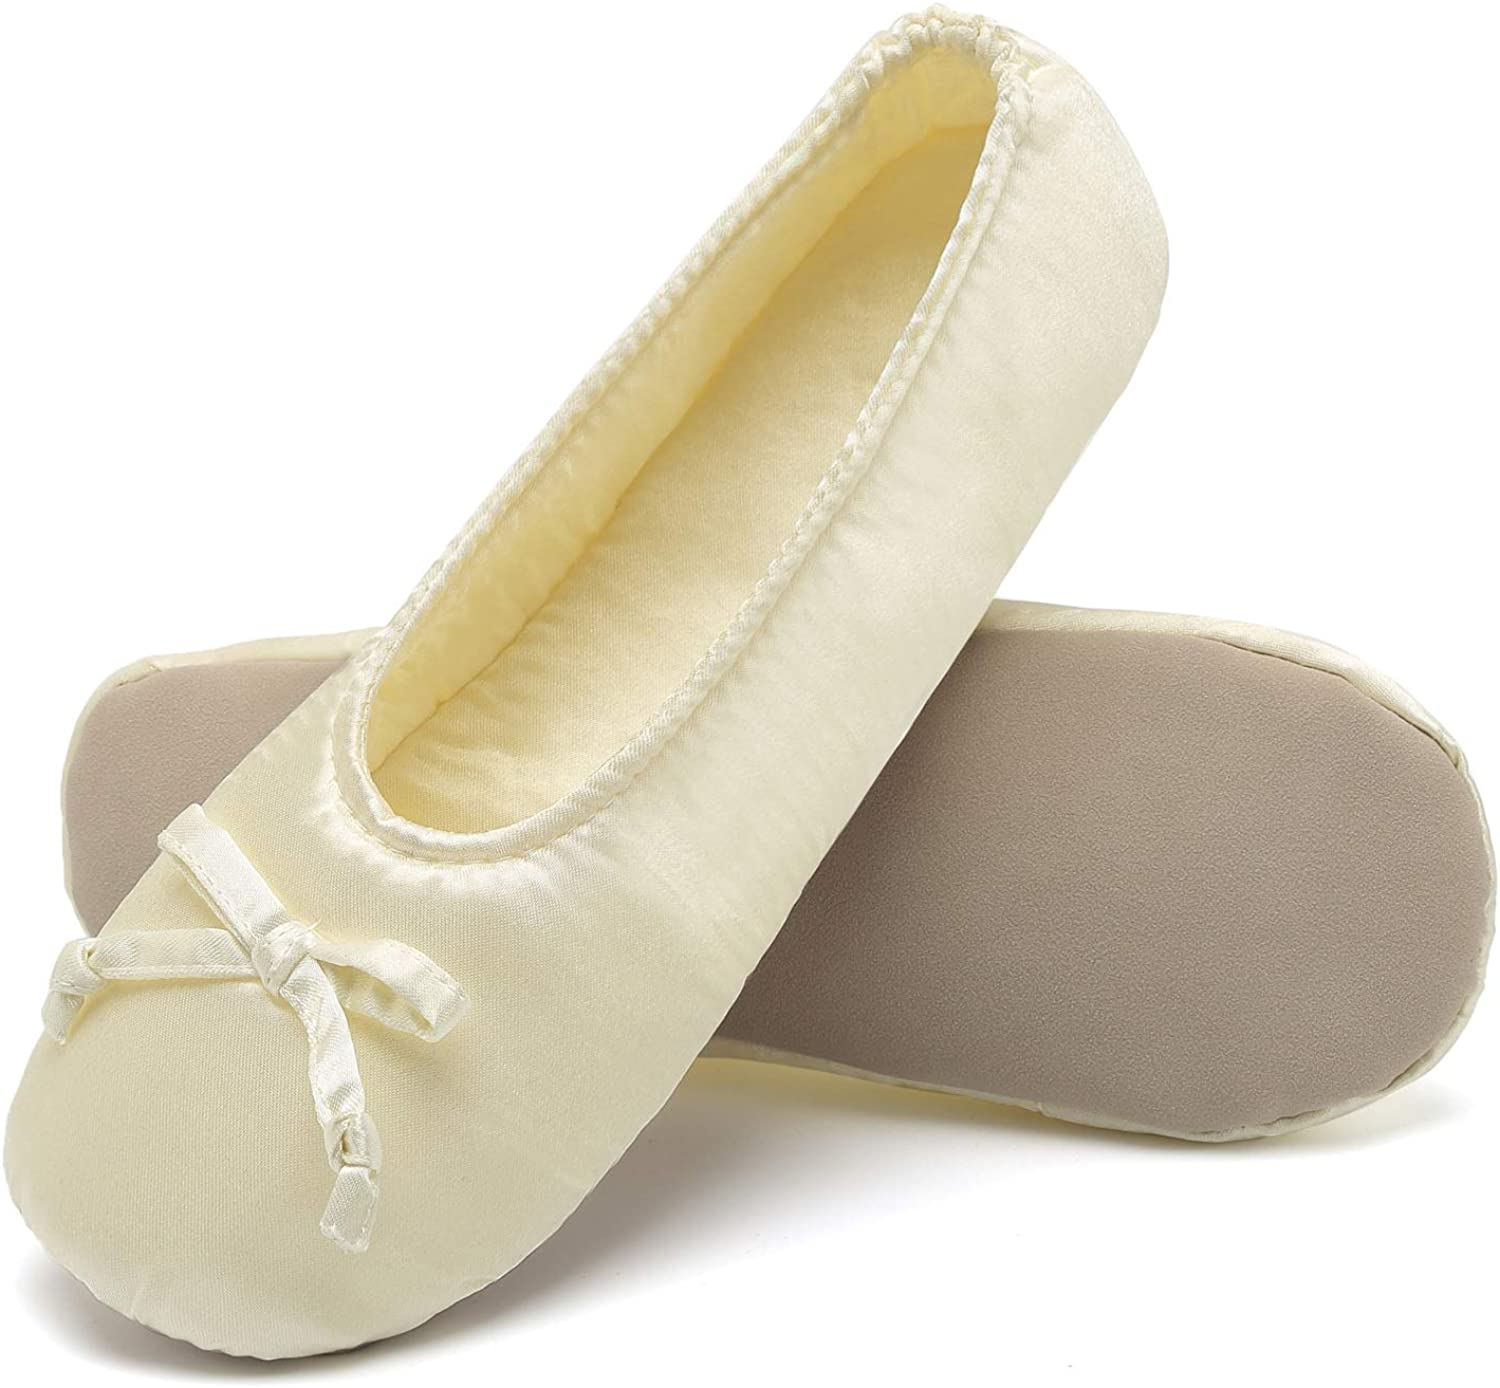 ANLUKE Ballet shoes House Slippers Flats Indoor shoes for Women